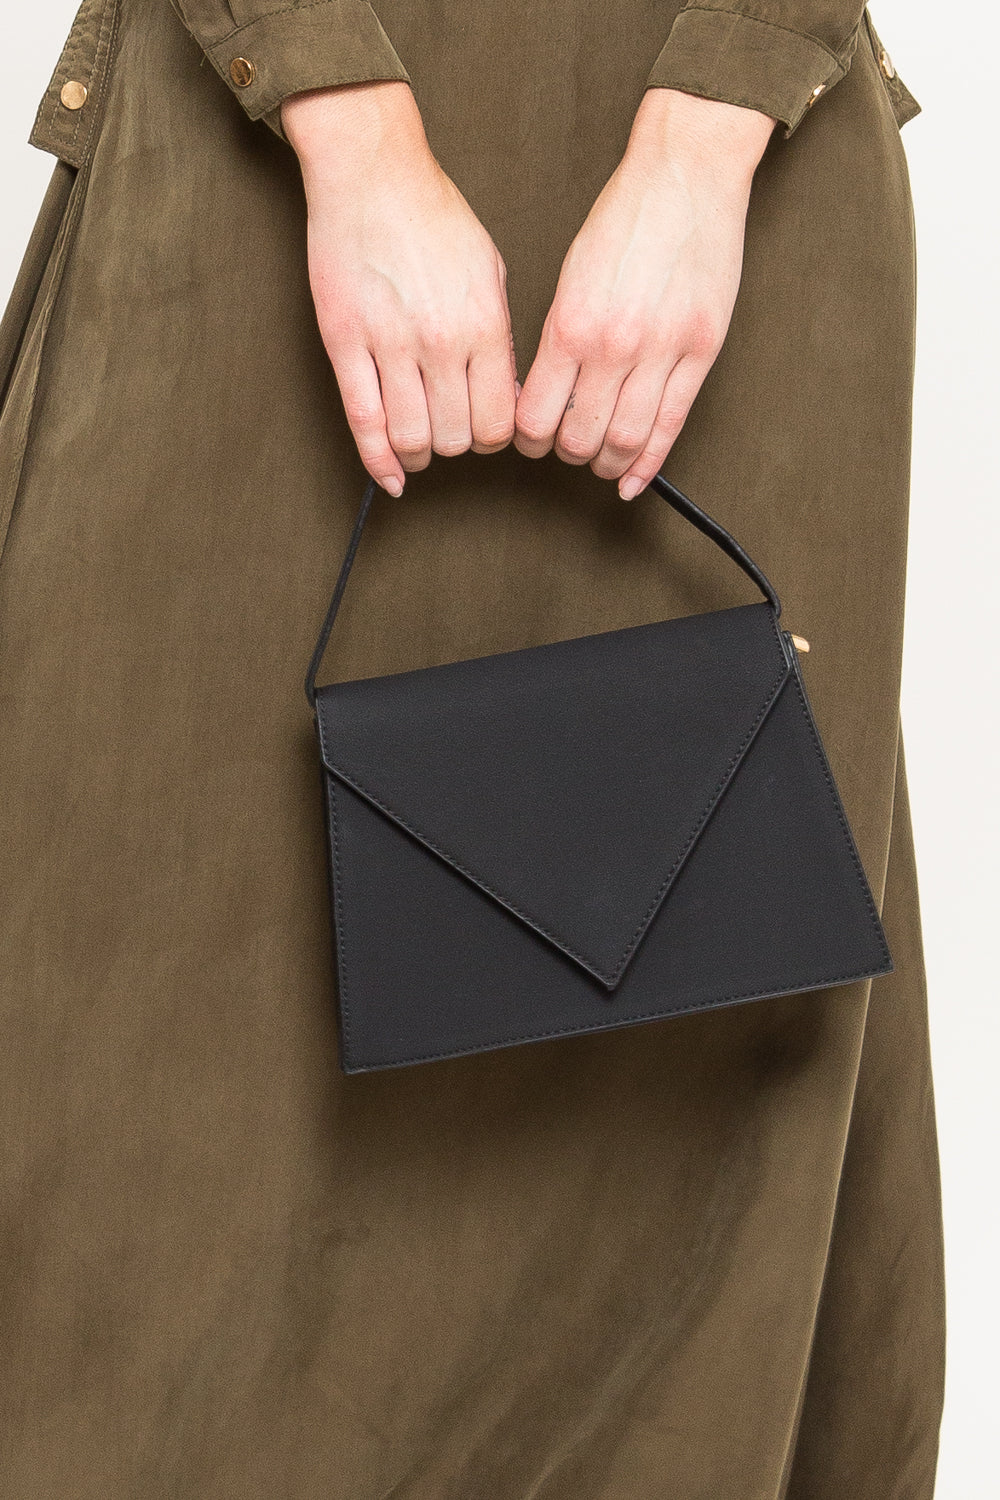 Mini Envelope Handbag - Geegeebae